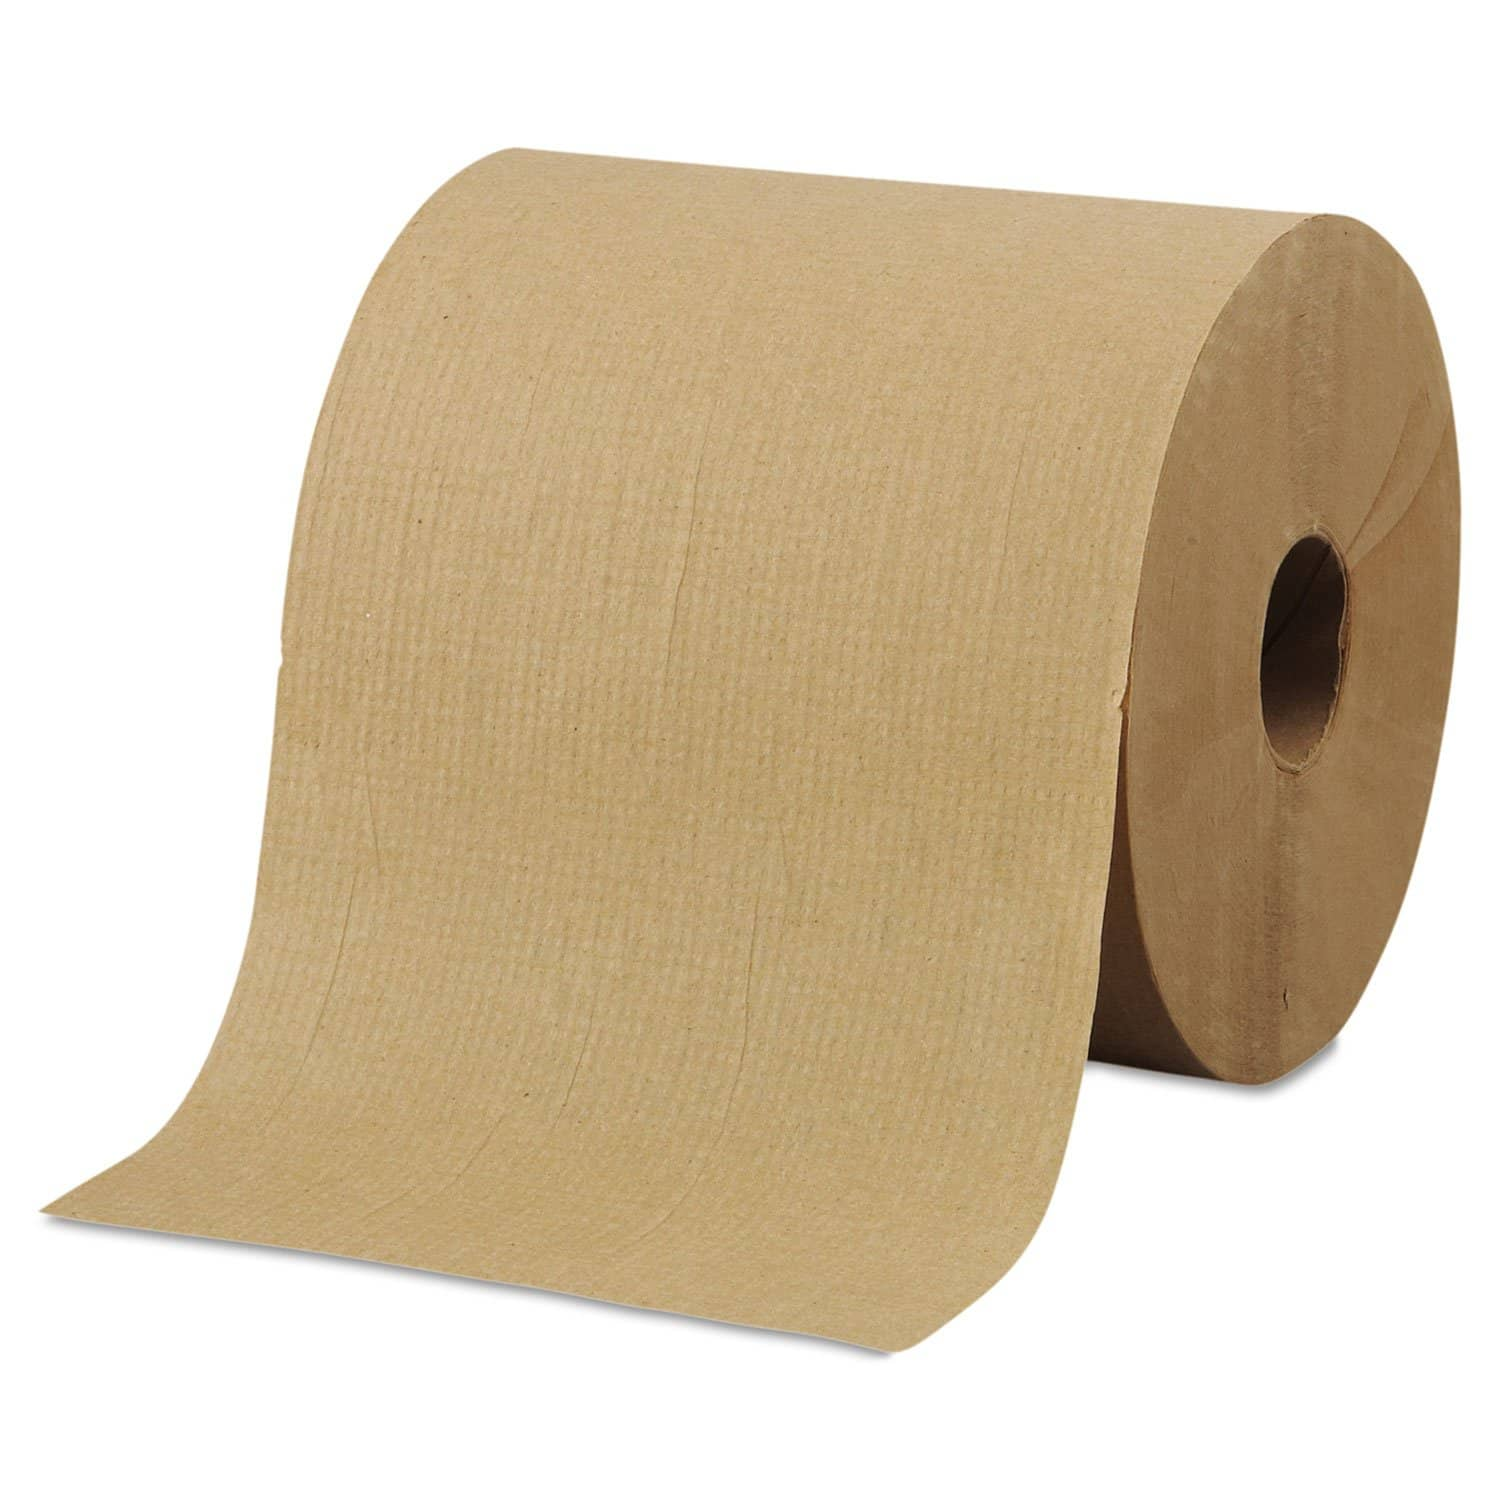 "Morcon Hardwound Roll Towels, 8"" X 800 Ft, Brown, 6 Rolls/Carton - MORR6800 - TotalRestroom.com"